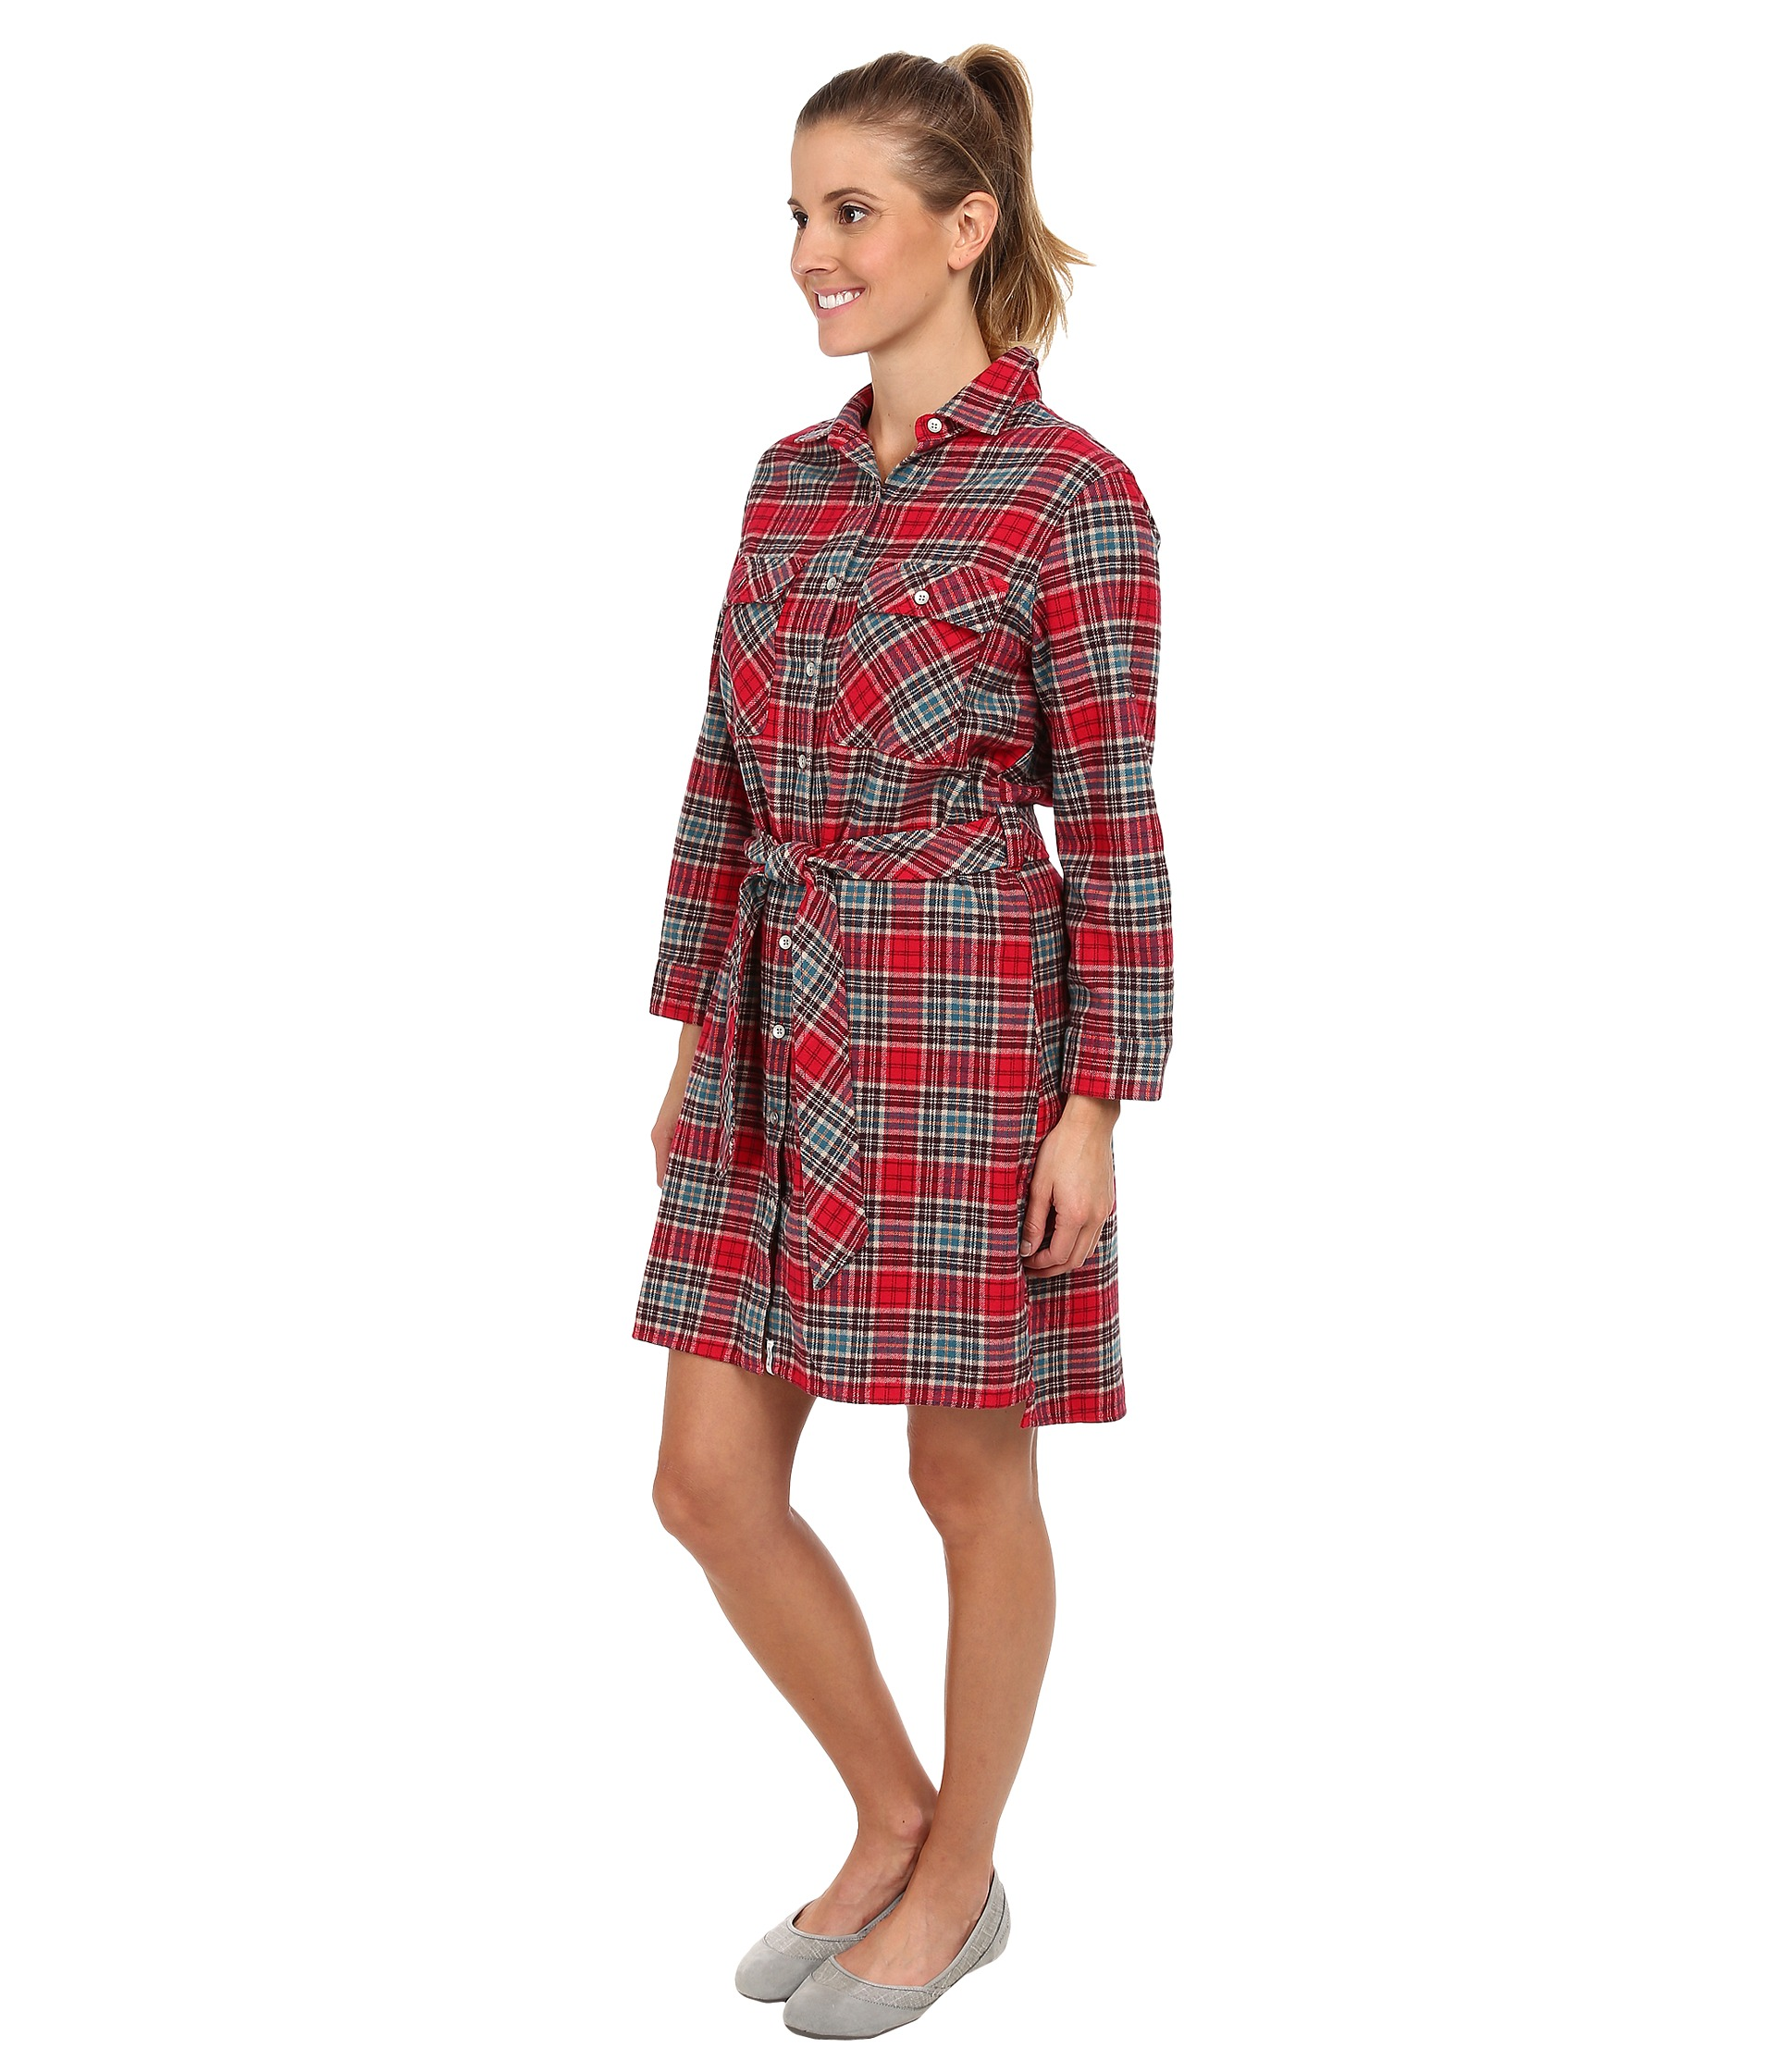 Shop from the world's largest selection and best deals for Flannel Shirt Dresses. Shop with confidence on eBay!